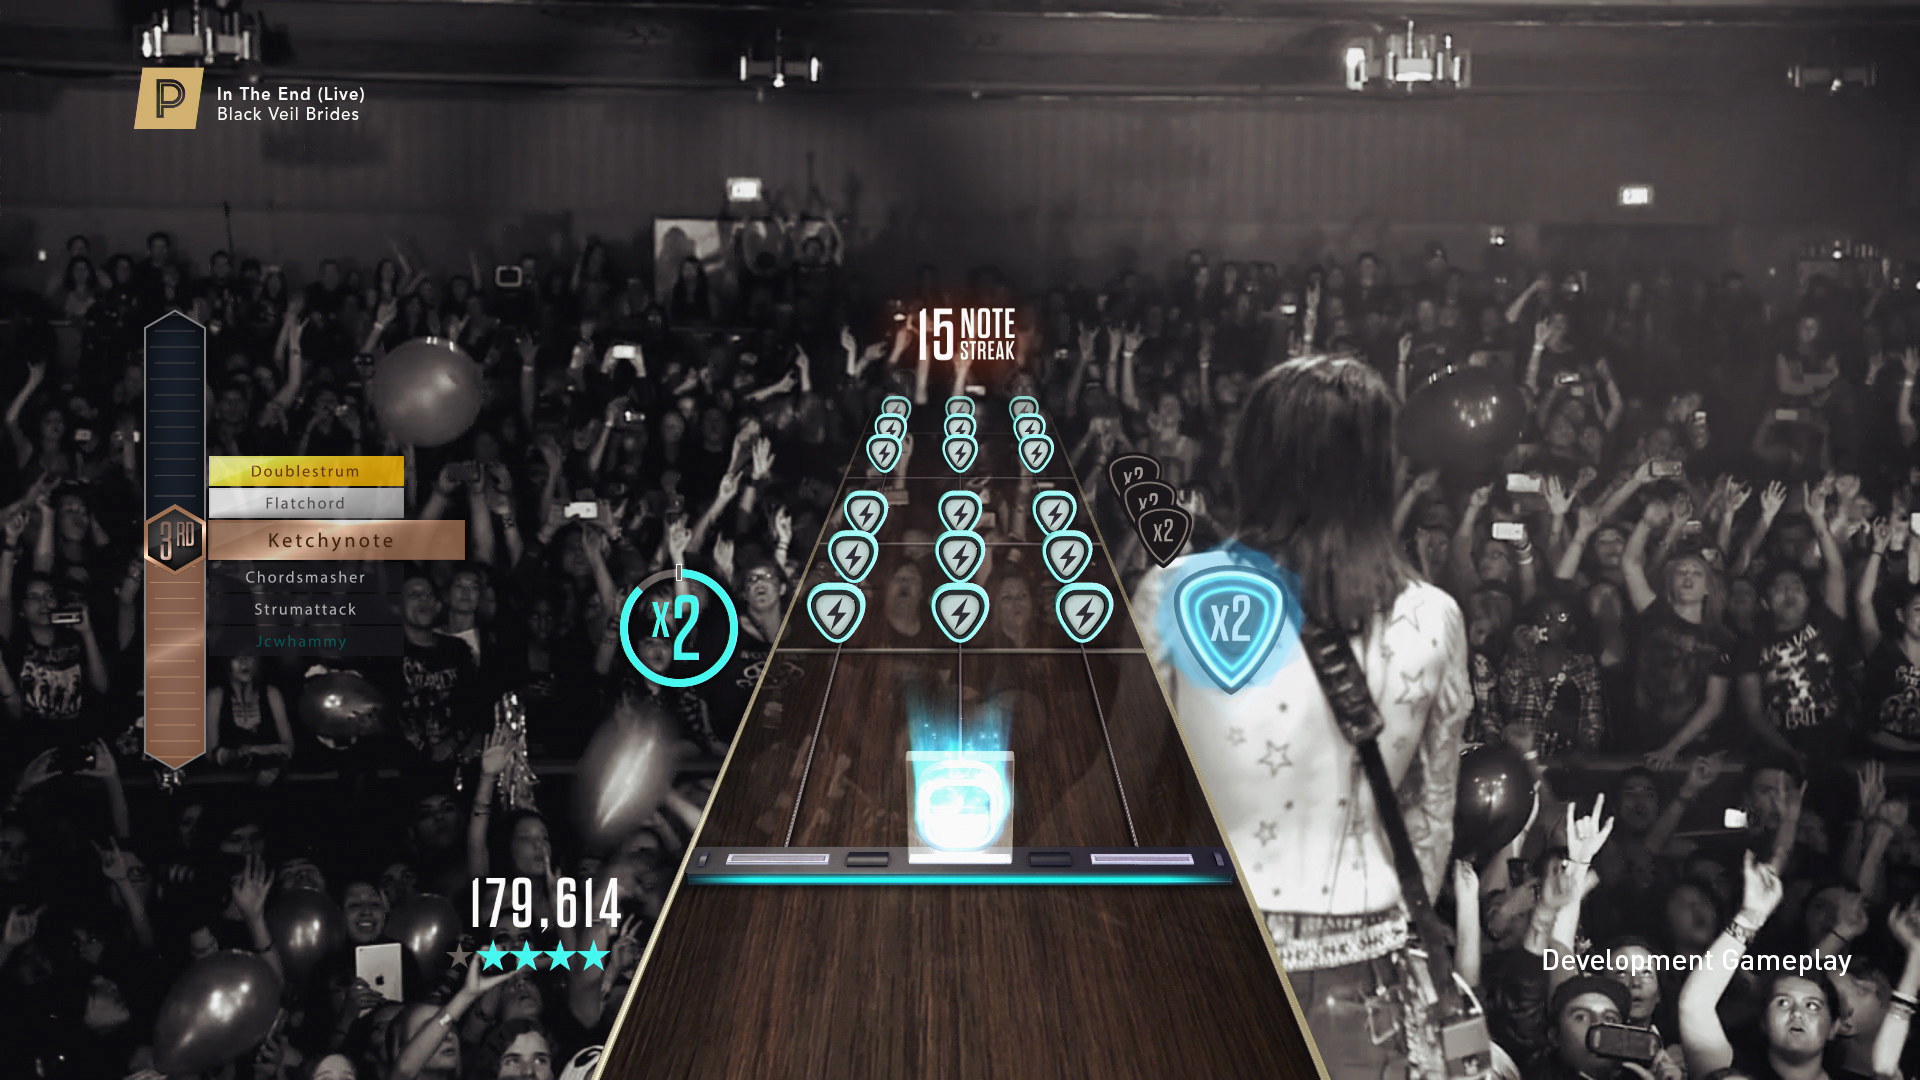 New Gameplay Feature Revealed For The Returning Guitar Hero Franchise